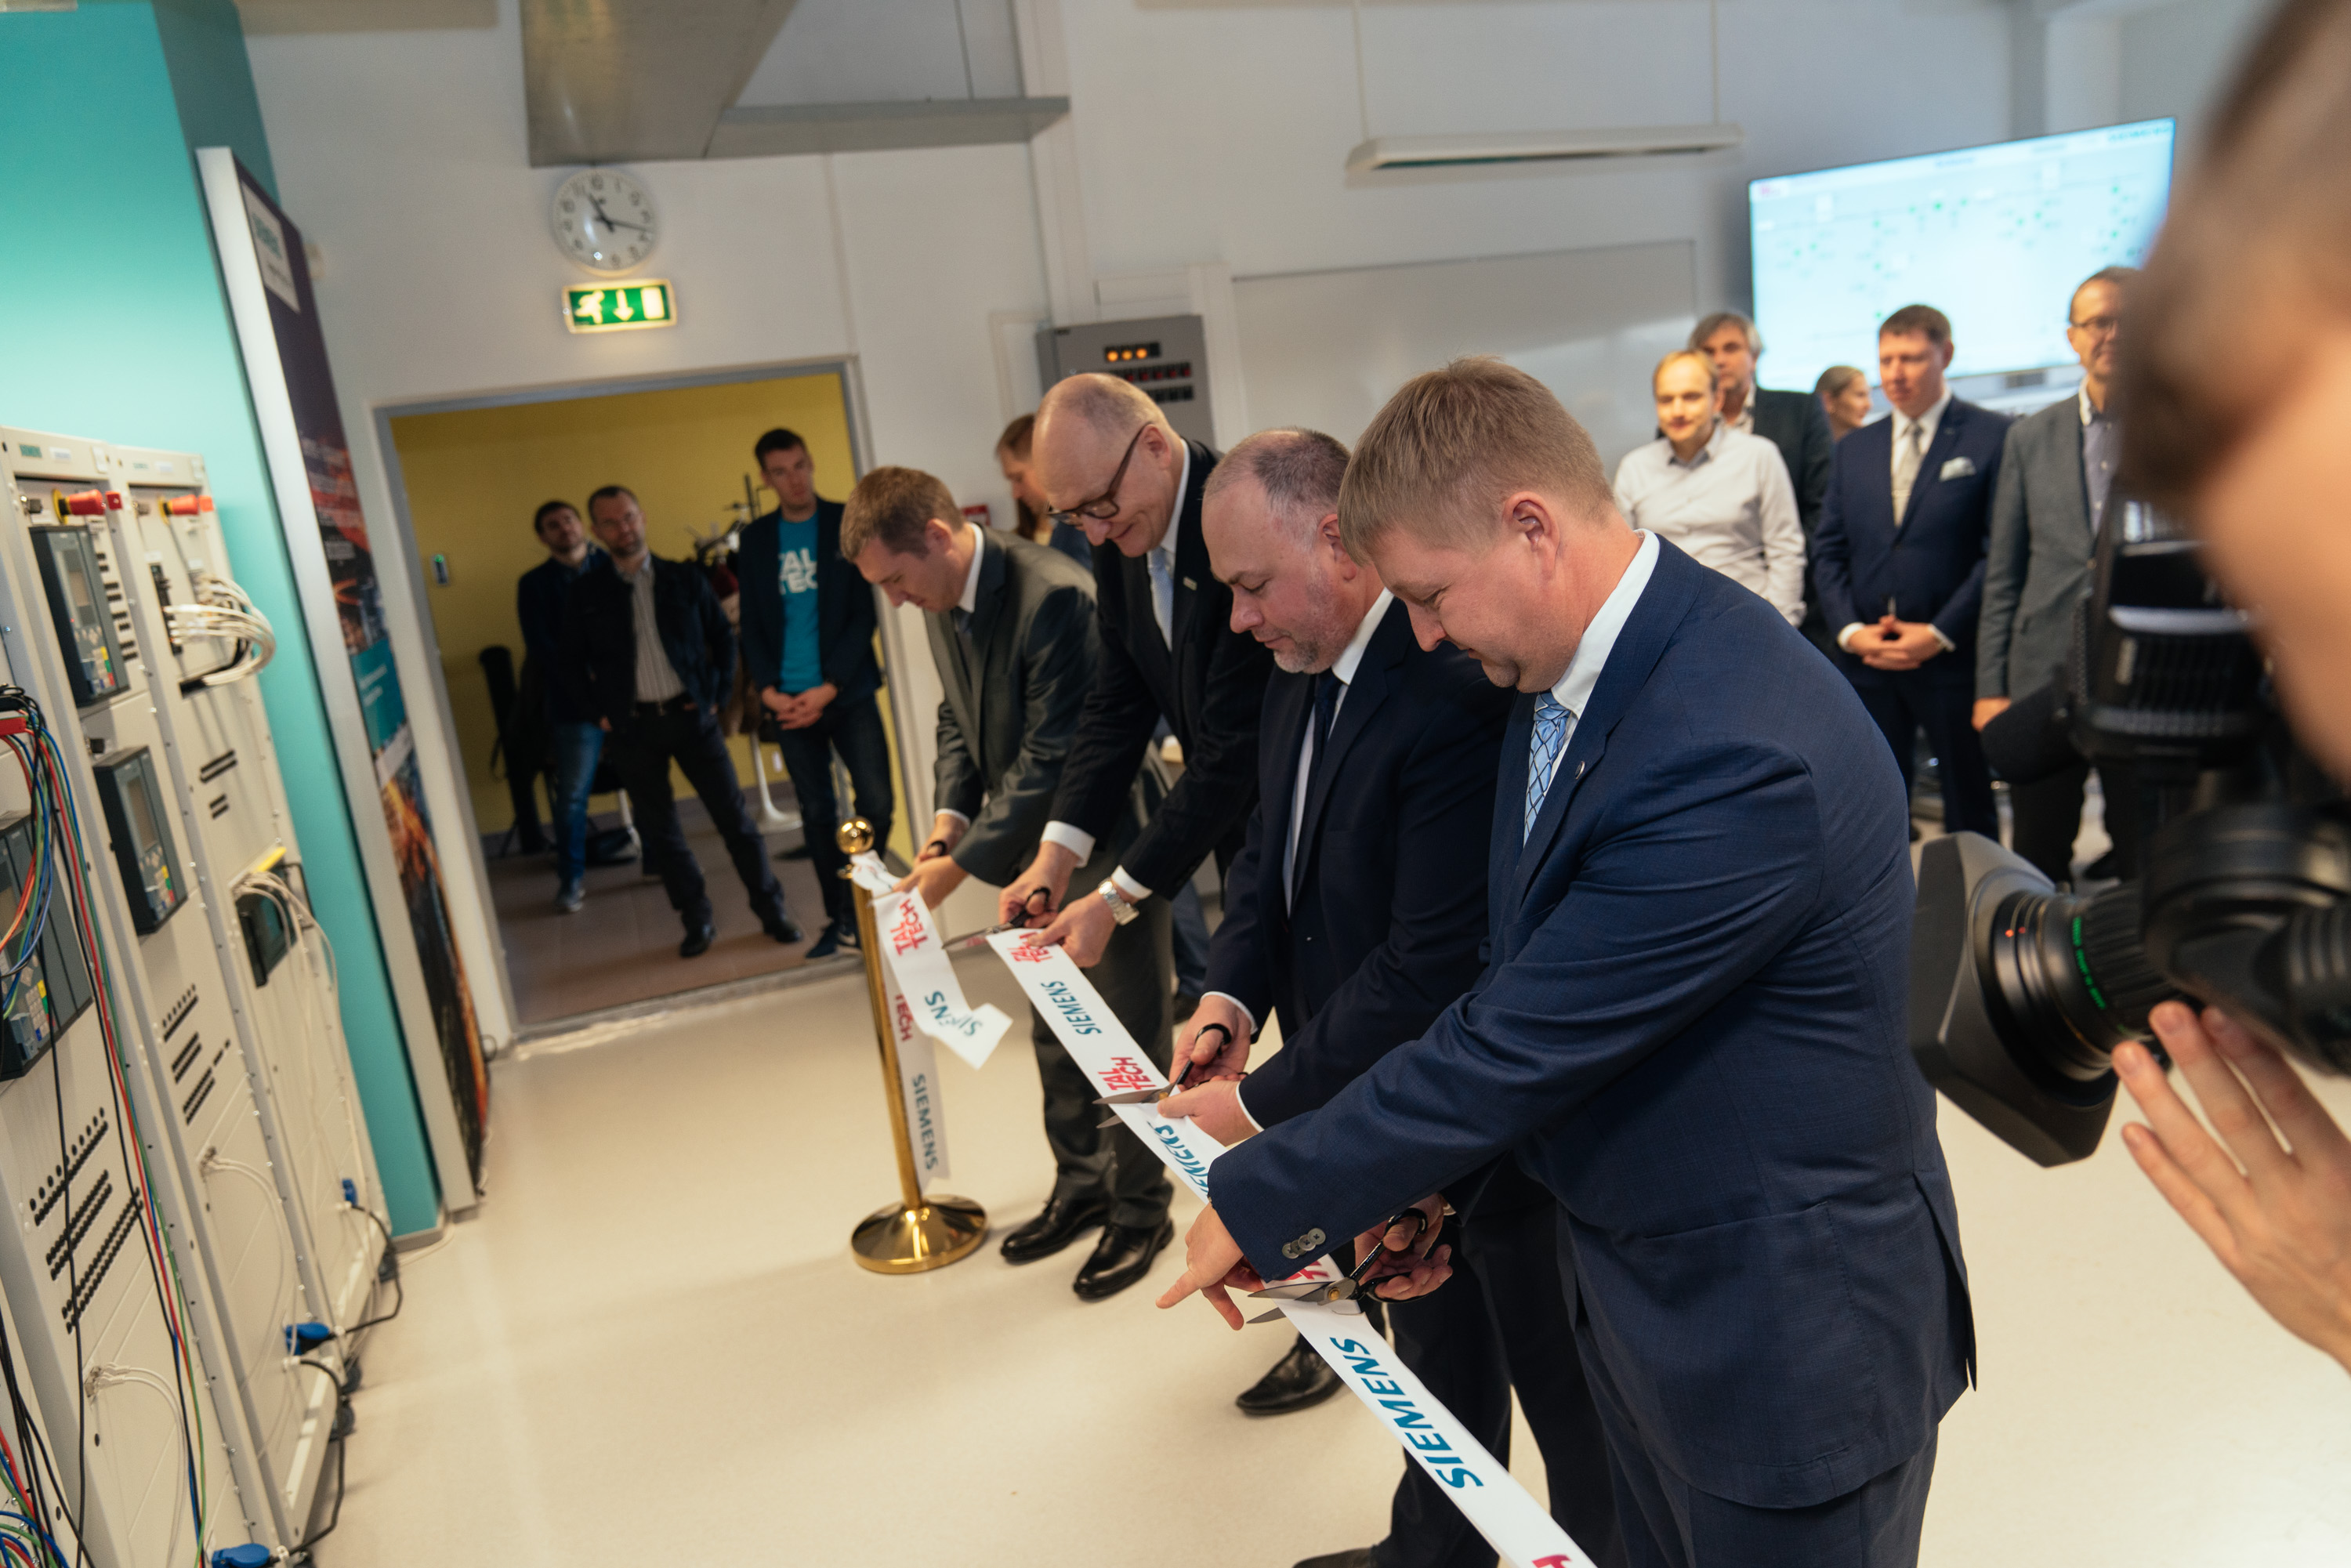 The study and research work in the new energetics laboratory will increase the reliability of Estonian electricity systems